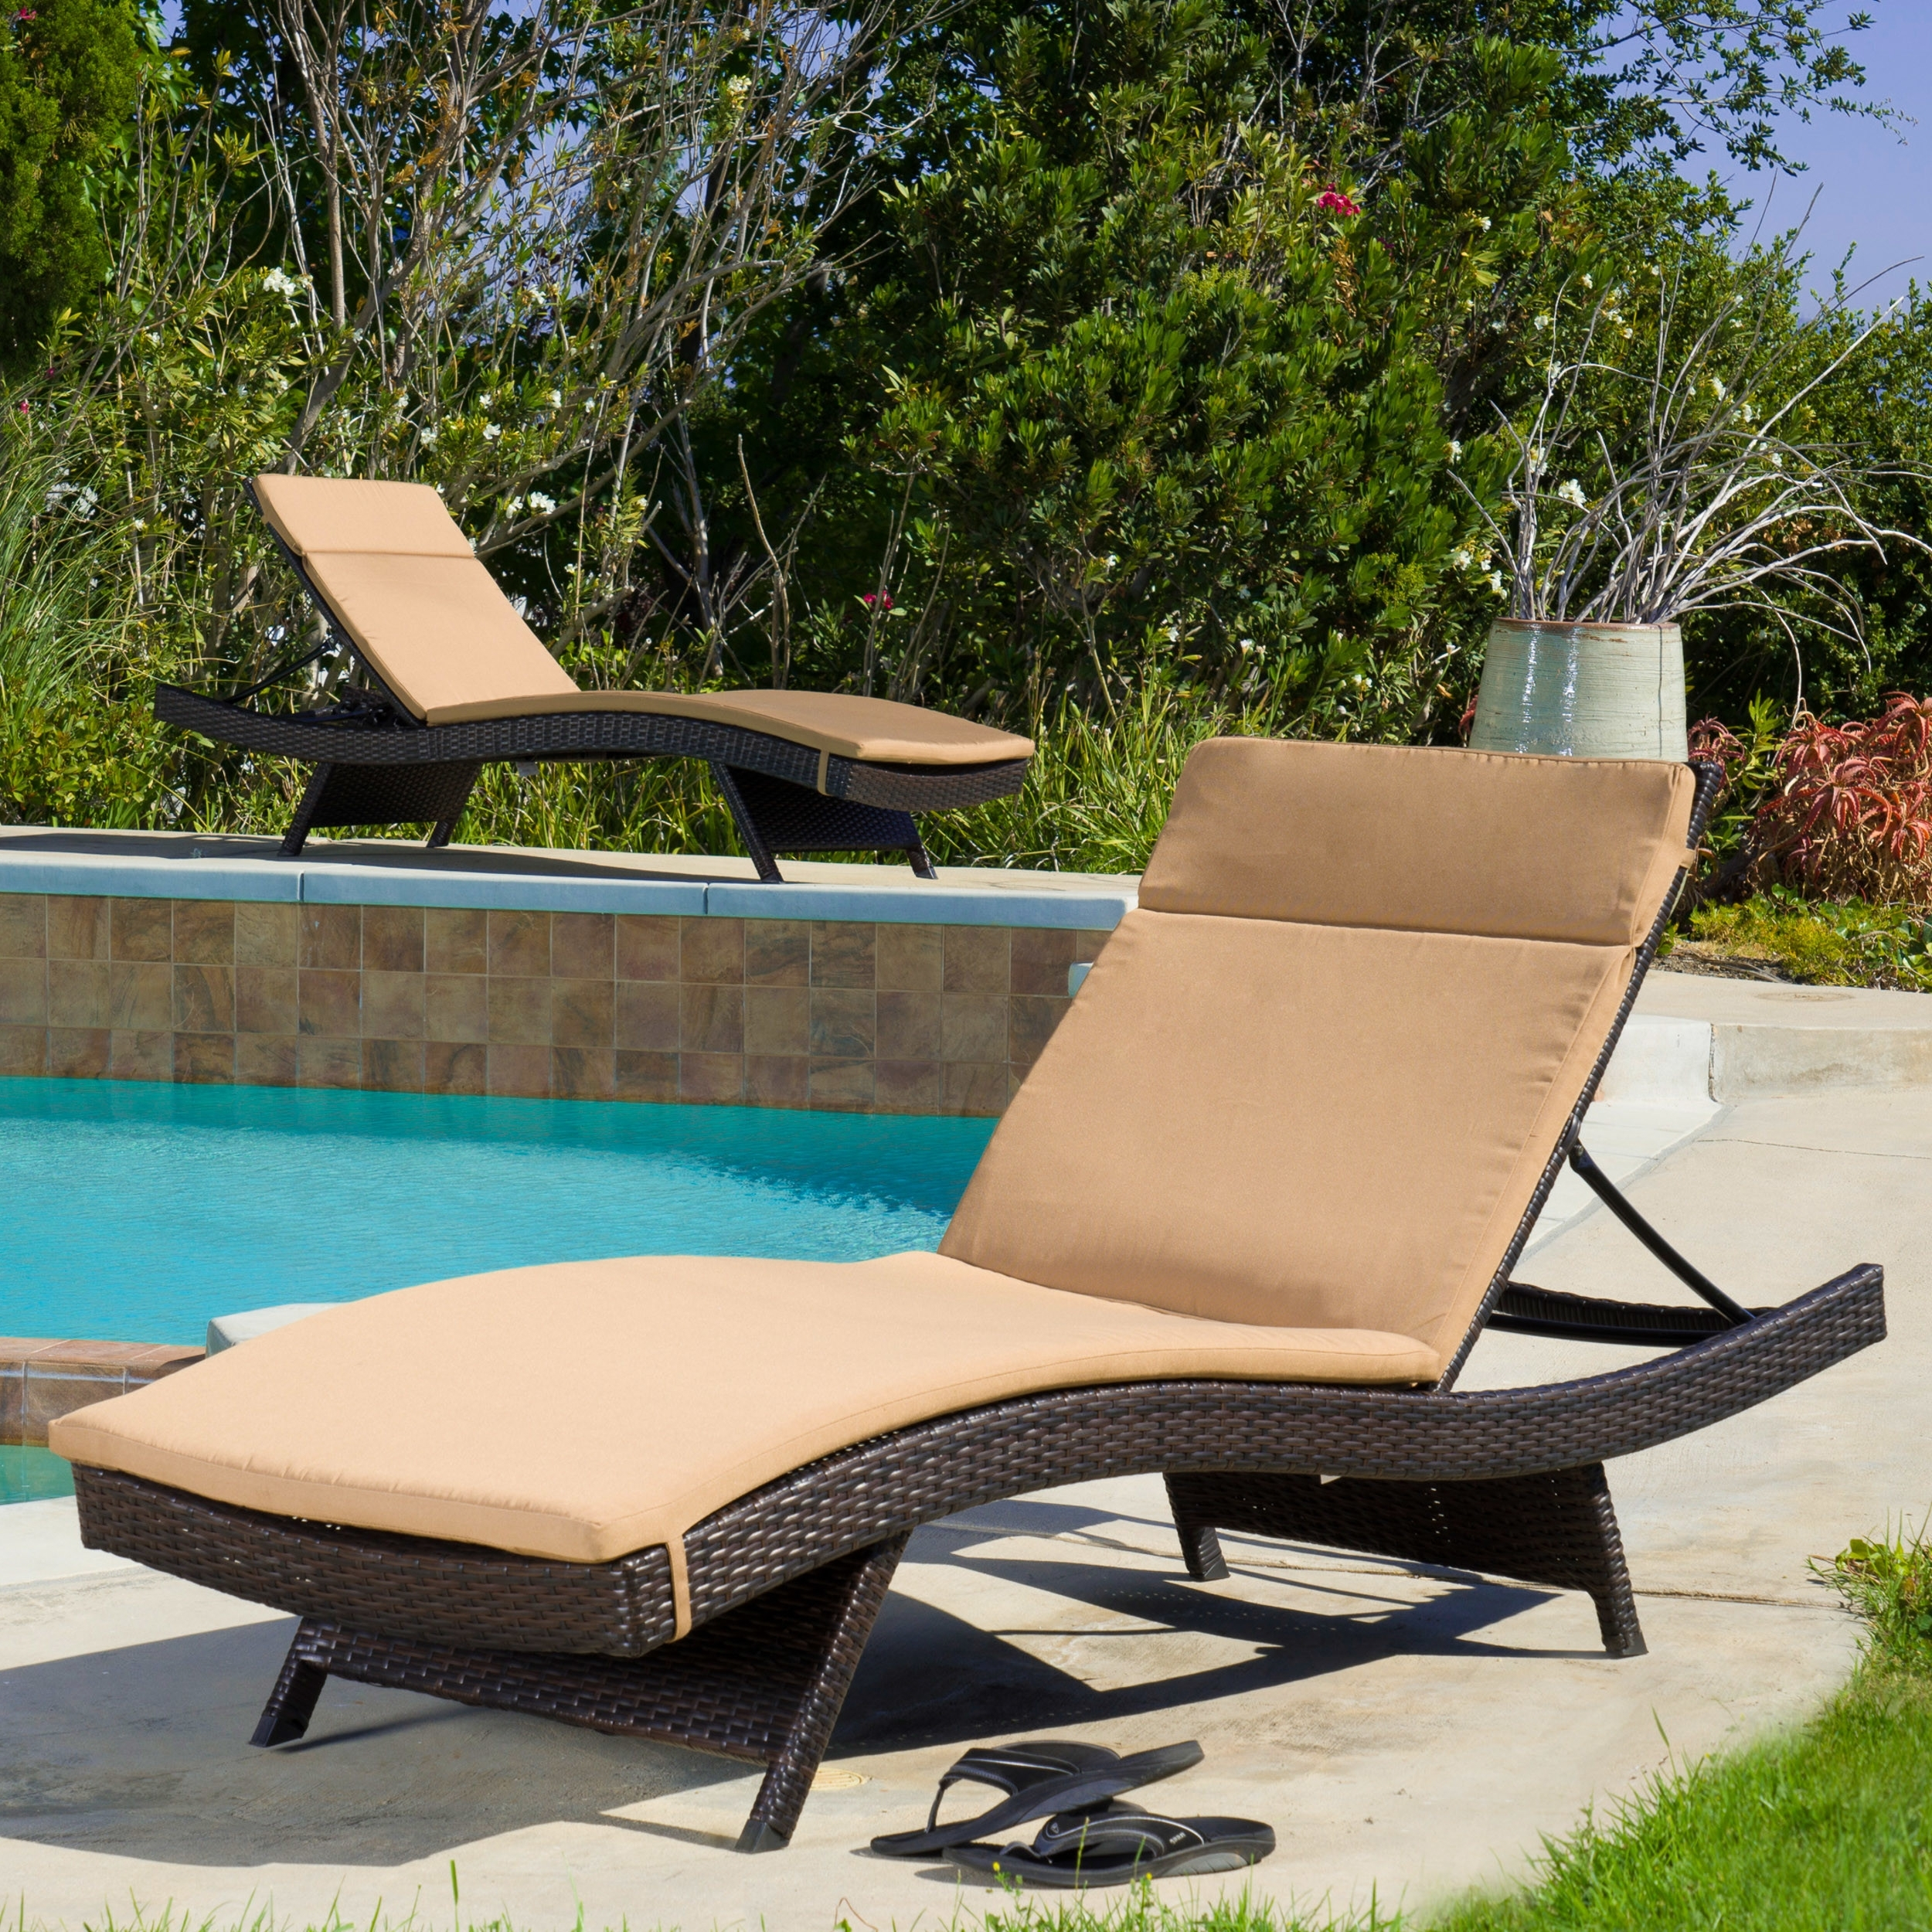 Preferred Chaise Lounge Chairs With Cushions With Regard To Patio Chaise Lounge As The Must Have Furniture In Your Pool Deck (View 13 of 15)